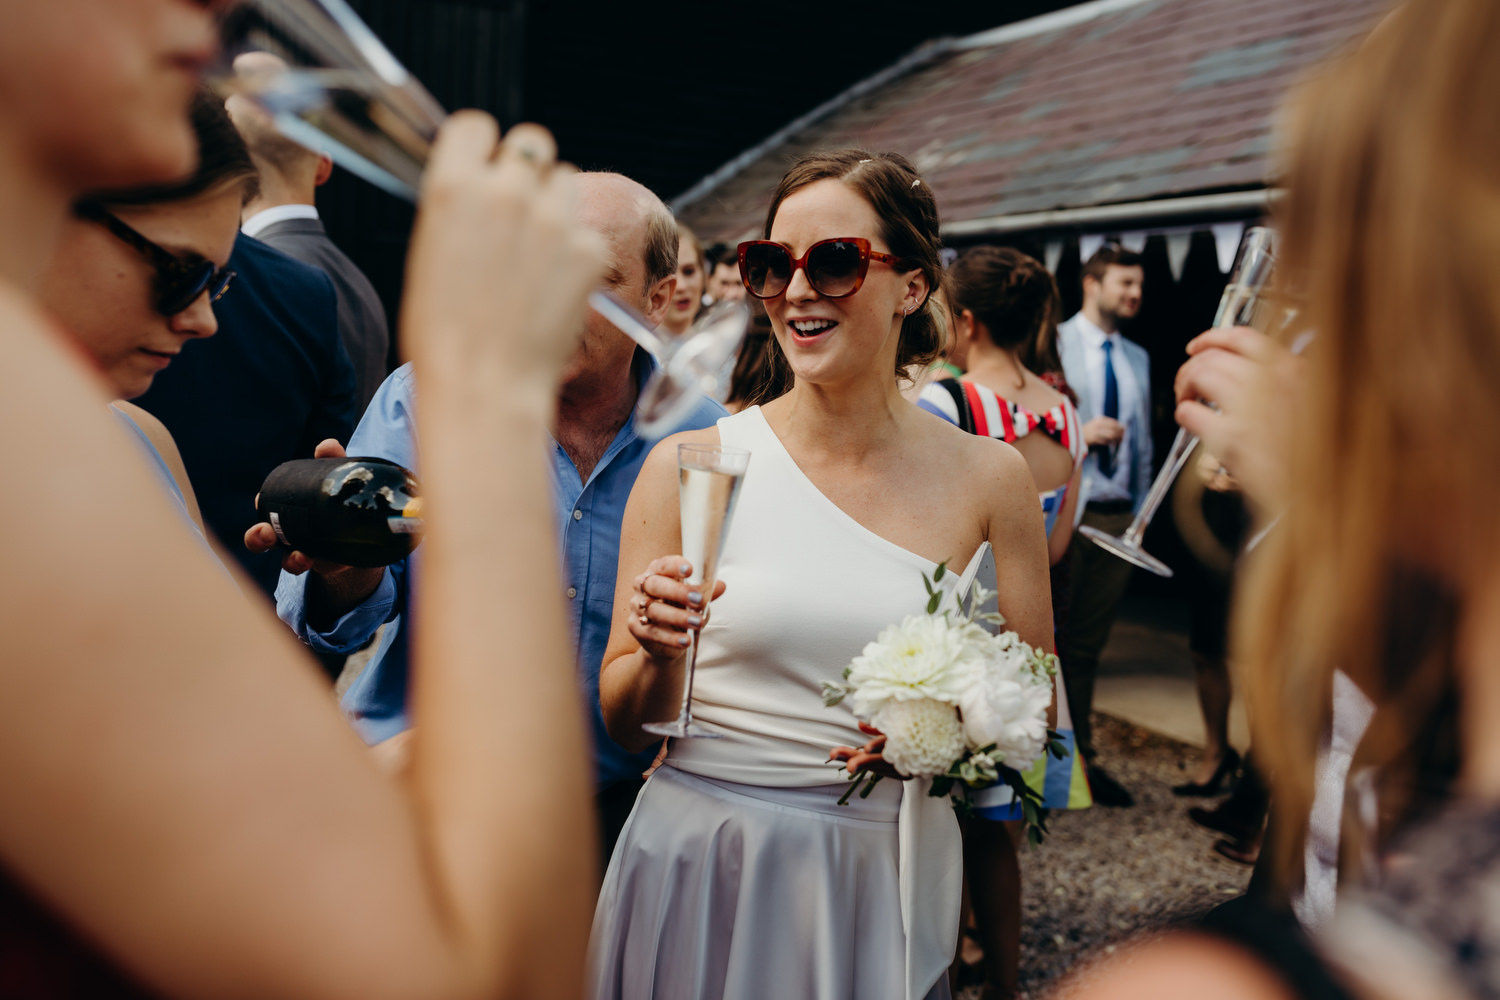 Bridesmaid with shades smiles